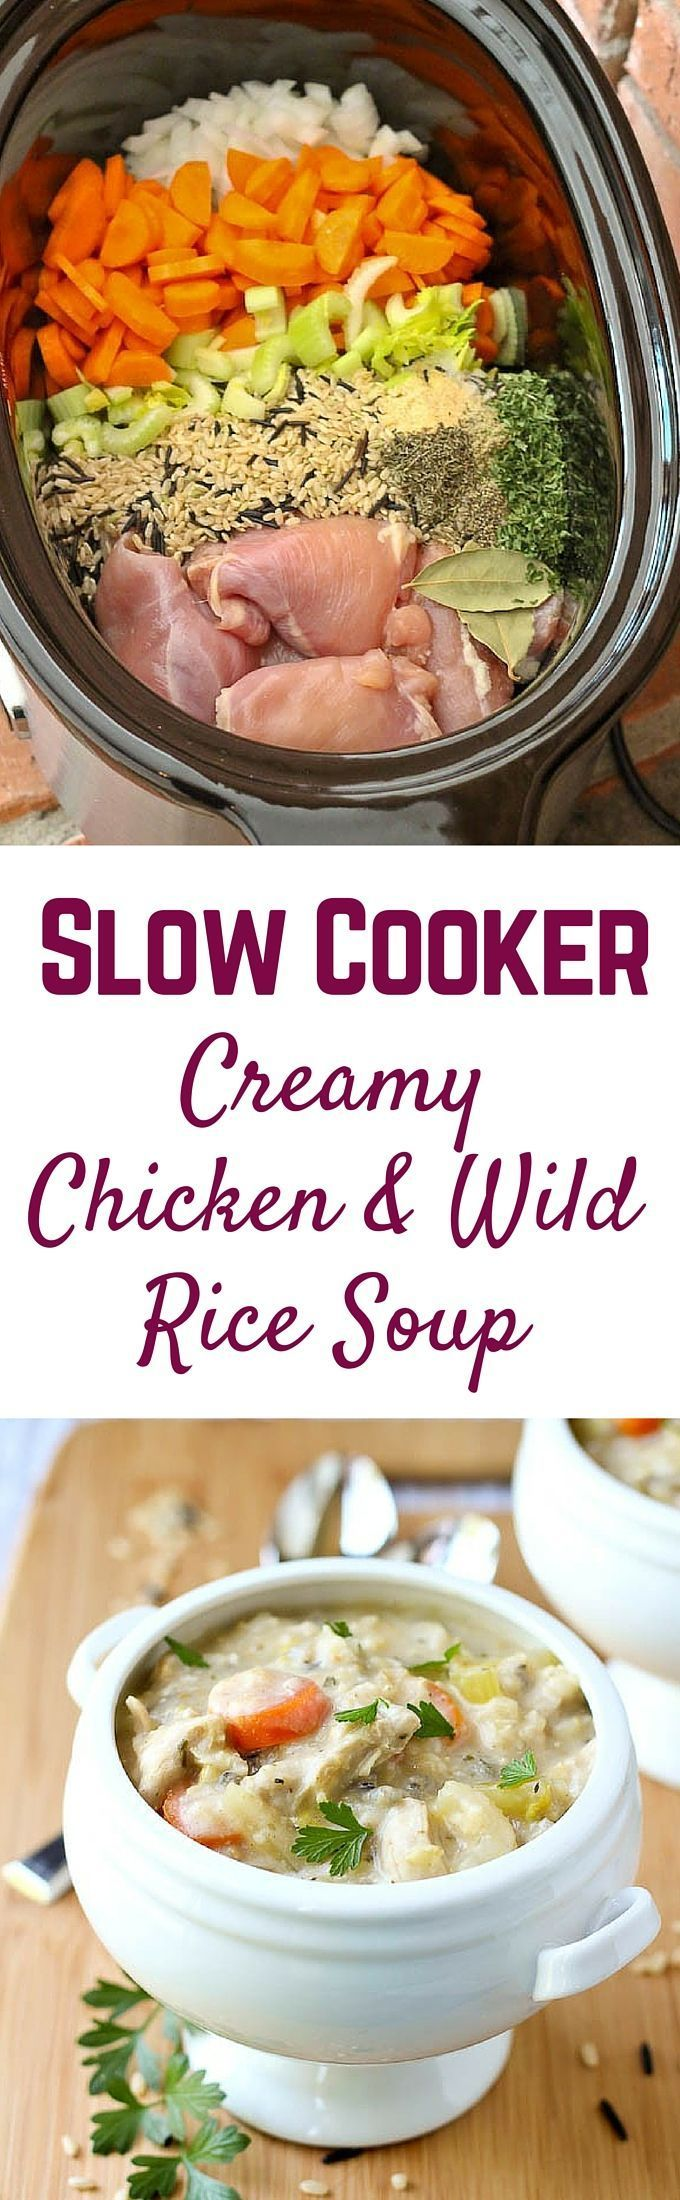 This Slow Cooker Creamy Chicken and Wild Rice Soup will be the star of your winter cuisine! Perfect for chilly days. Get the easy recipe on http://RachelCooks.com!